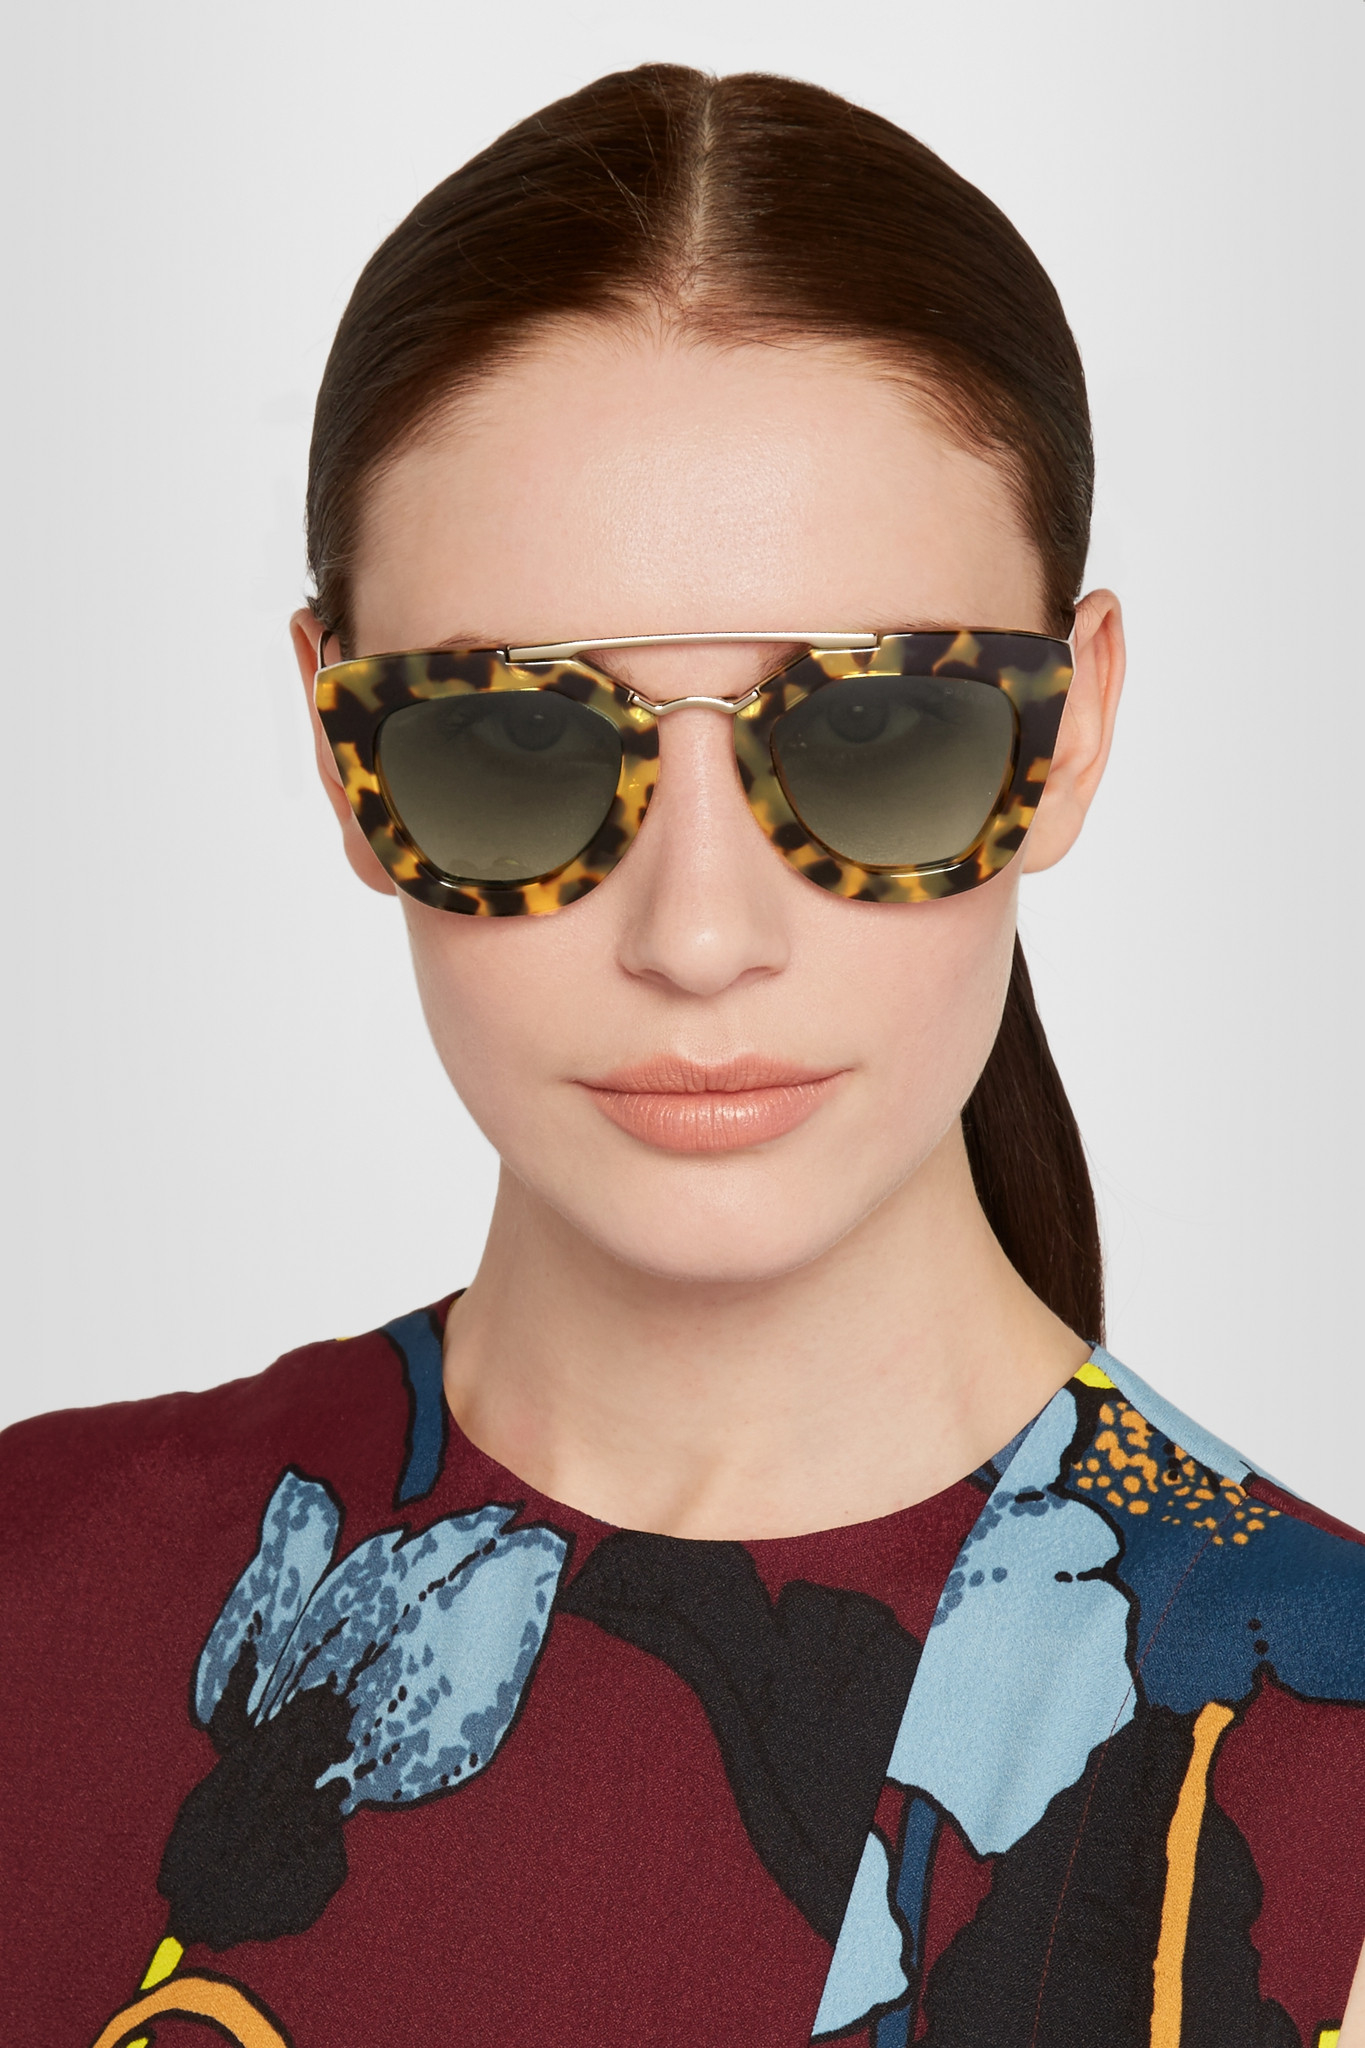 09a71b43f42 discount prada tortoiseshell pentagonal cat eye sunglasses a3a8f 52081  hot  prada d frame acetate and gold tone sunglasses in brown lyst c5d69 5220c